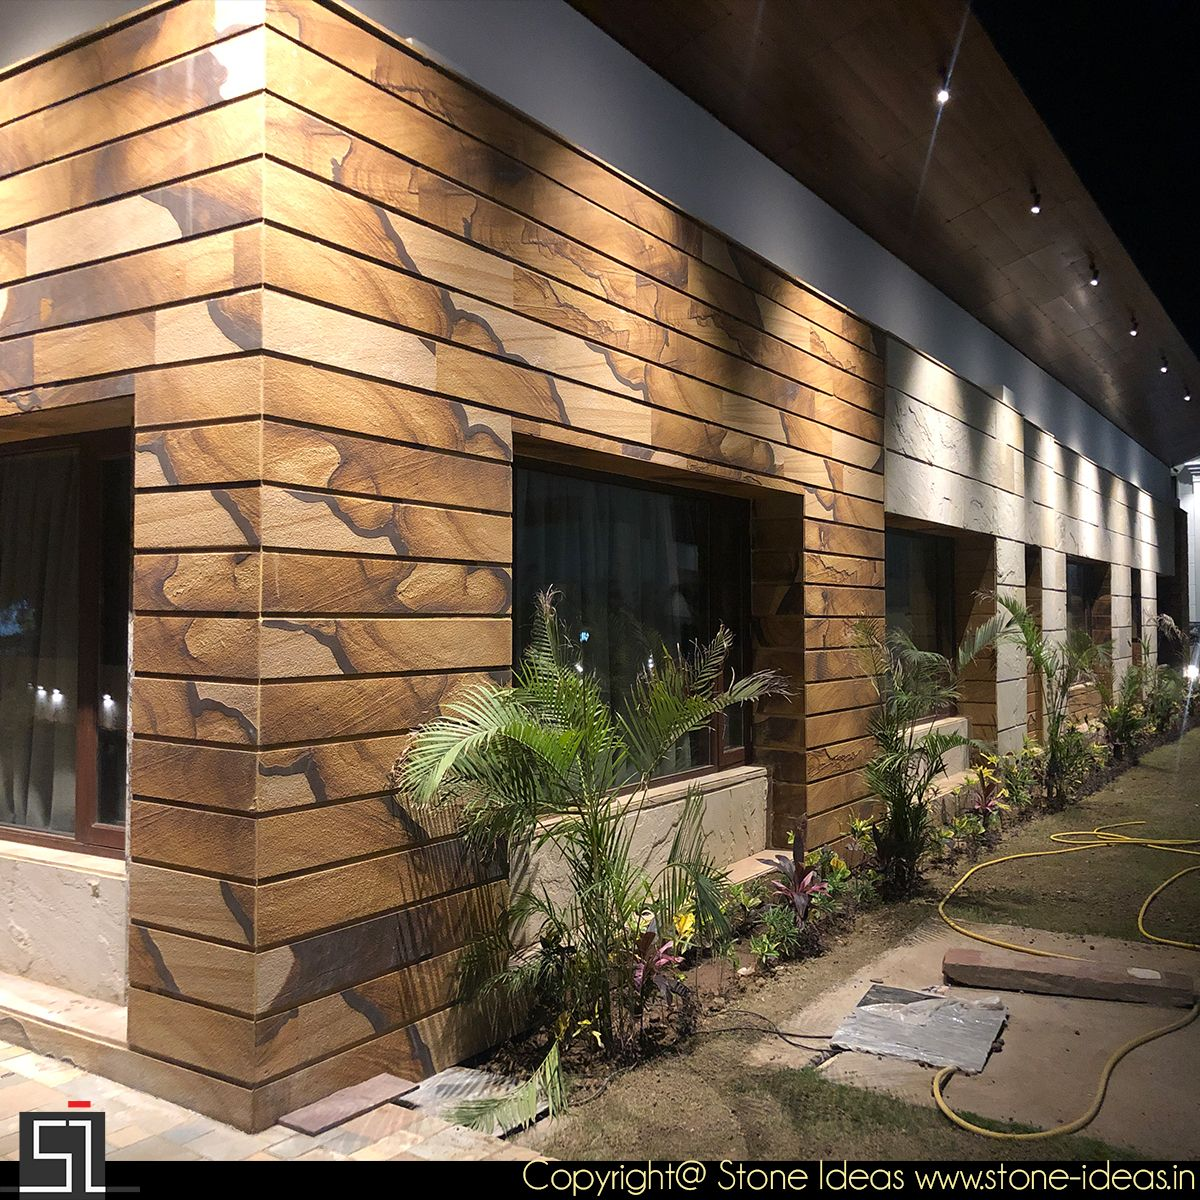 Clientdiaries Wooden Fossil Stone Tiles For Front Elevation Walls Creates Magnificent Effect Exterior Wall Tiles Wall Tiles Design Stone Cladding Texture